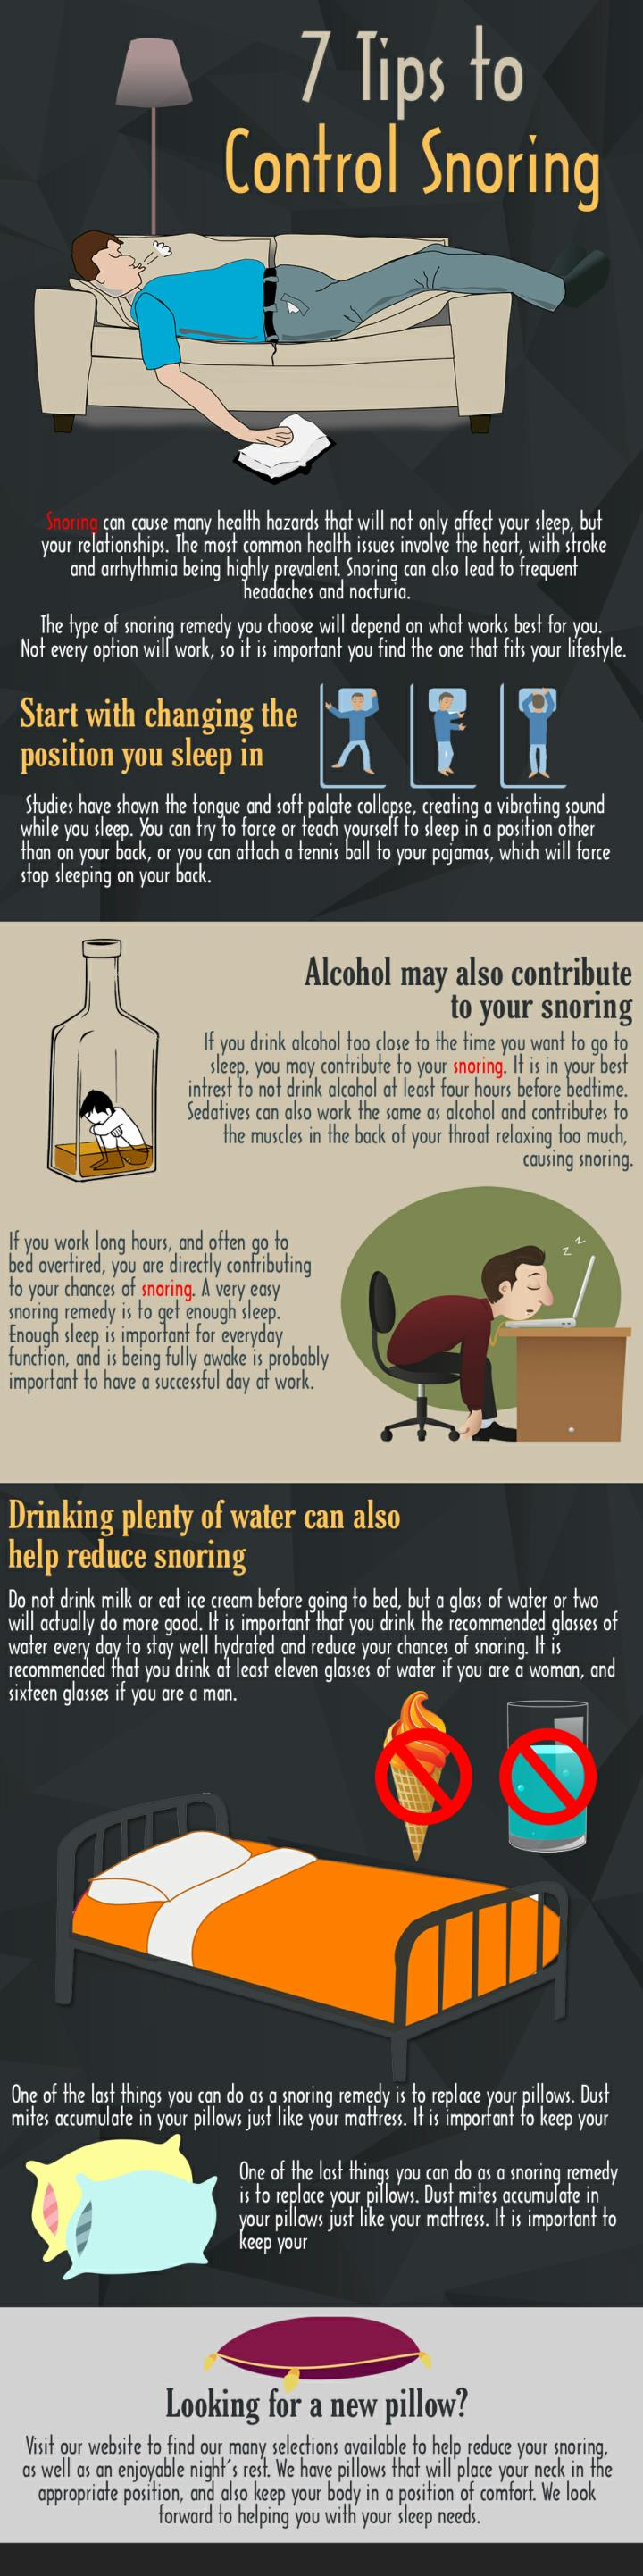 7 tips to control snoring